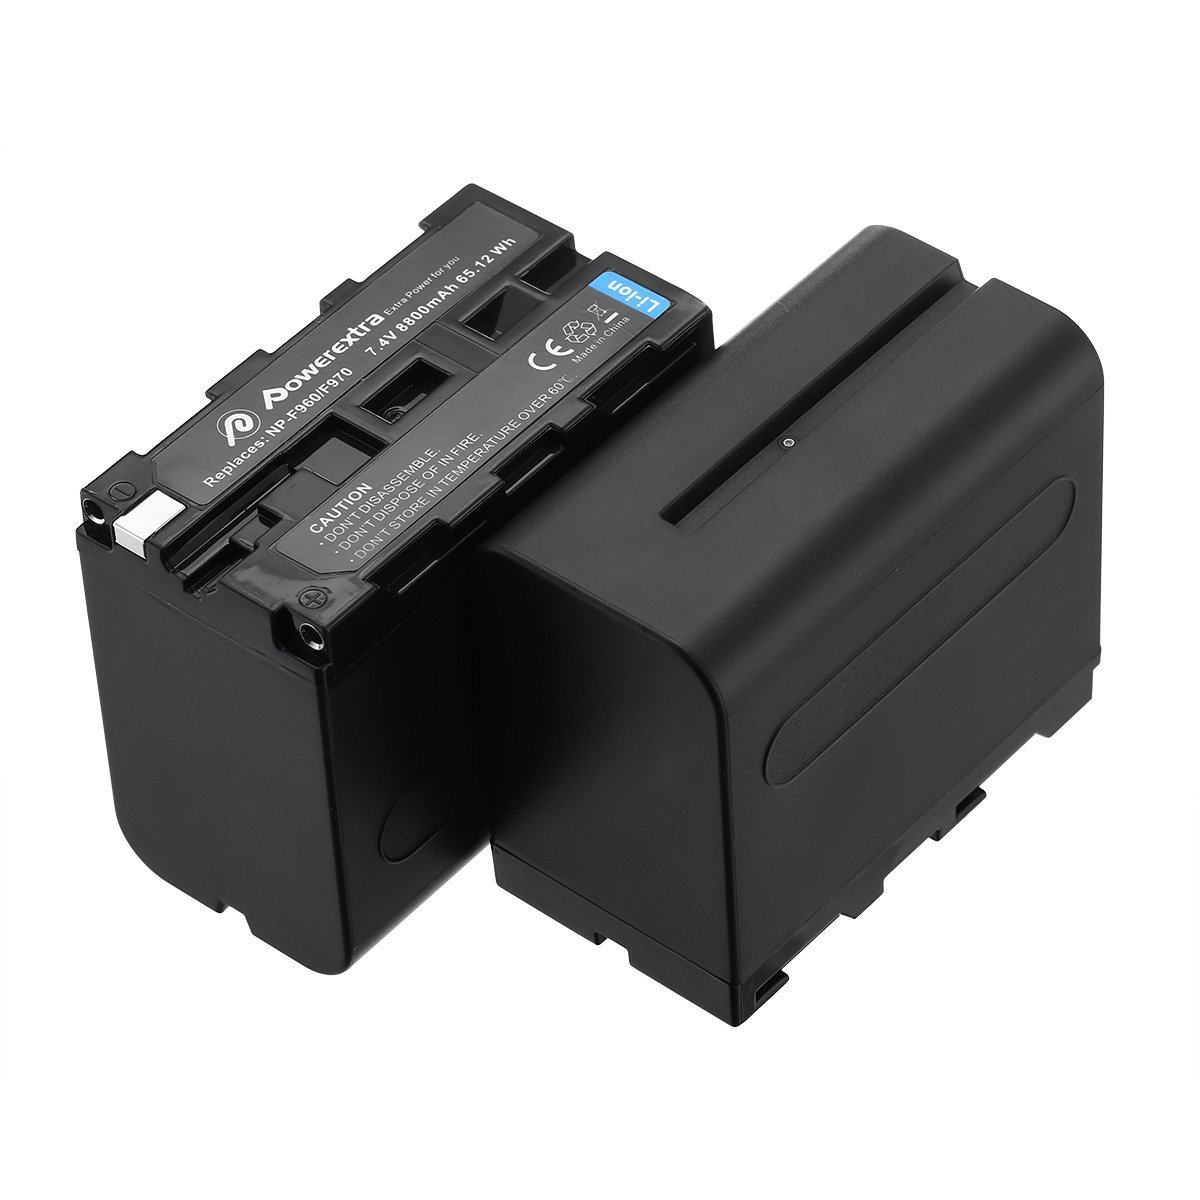 Powerextra 2 Pack Replacement Sony NP-F970 Battery Compatible with Sony DCR-VX2100, DSR-PD150, DSR-PD170, FDR-AX1, HDR-AX2000, HDR-FX1, HDR-FX7, HDR-FX1000, HVL-LBPB, HVR-HD1000U, HVR-V1U, HVR-Z1P by Powerextra